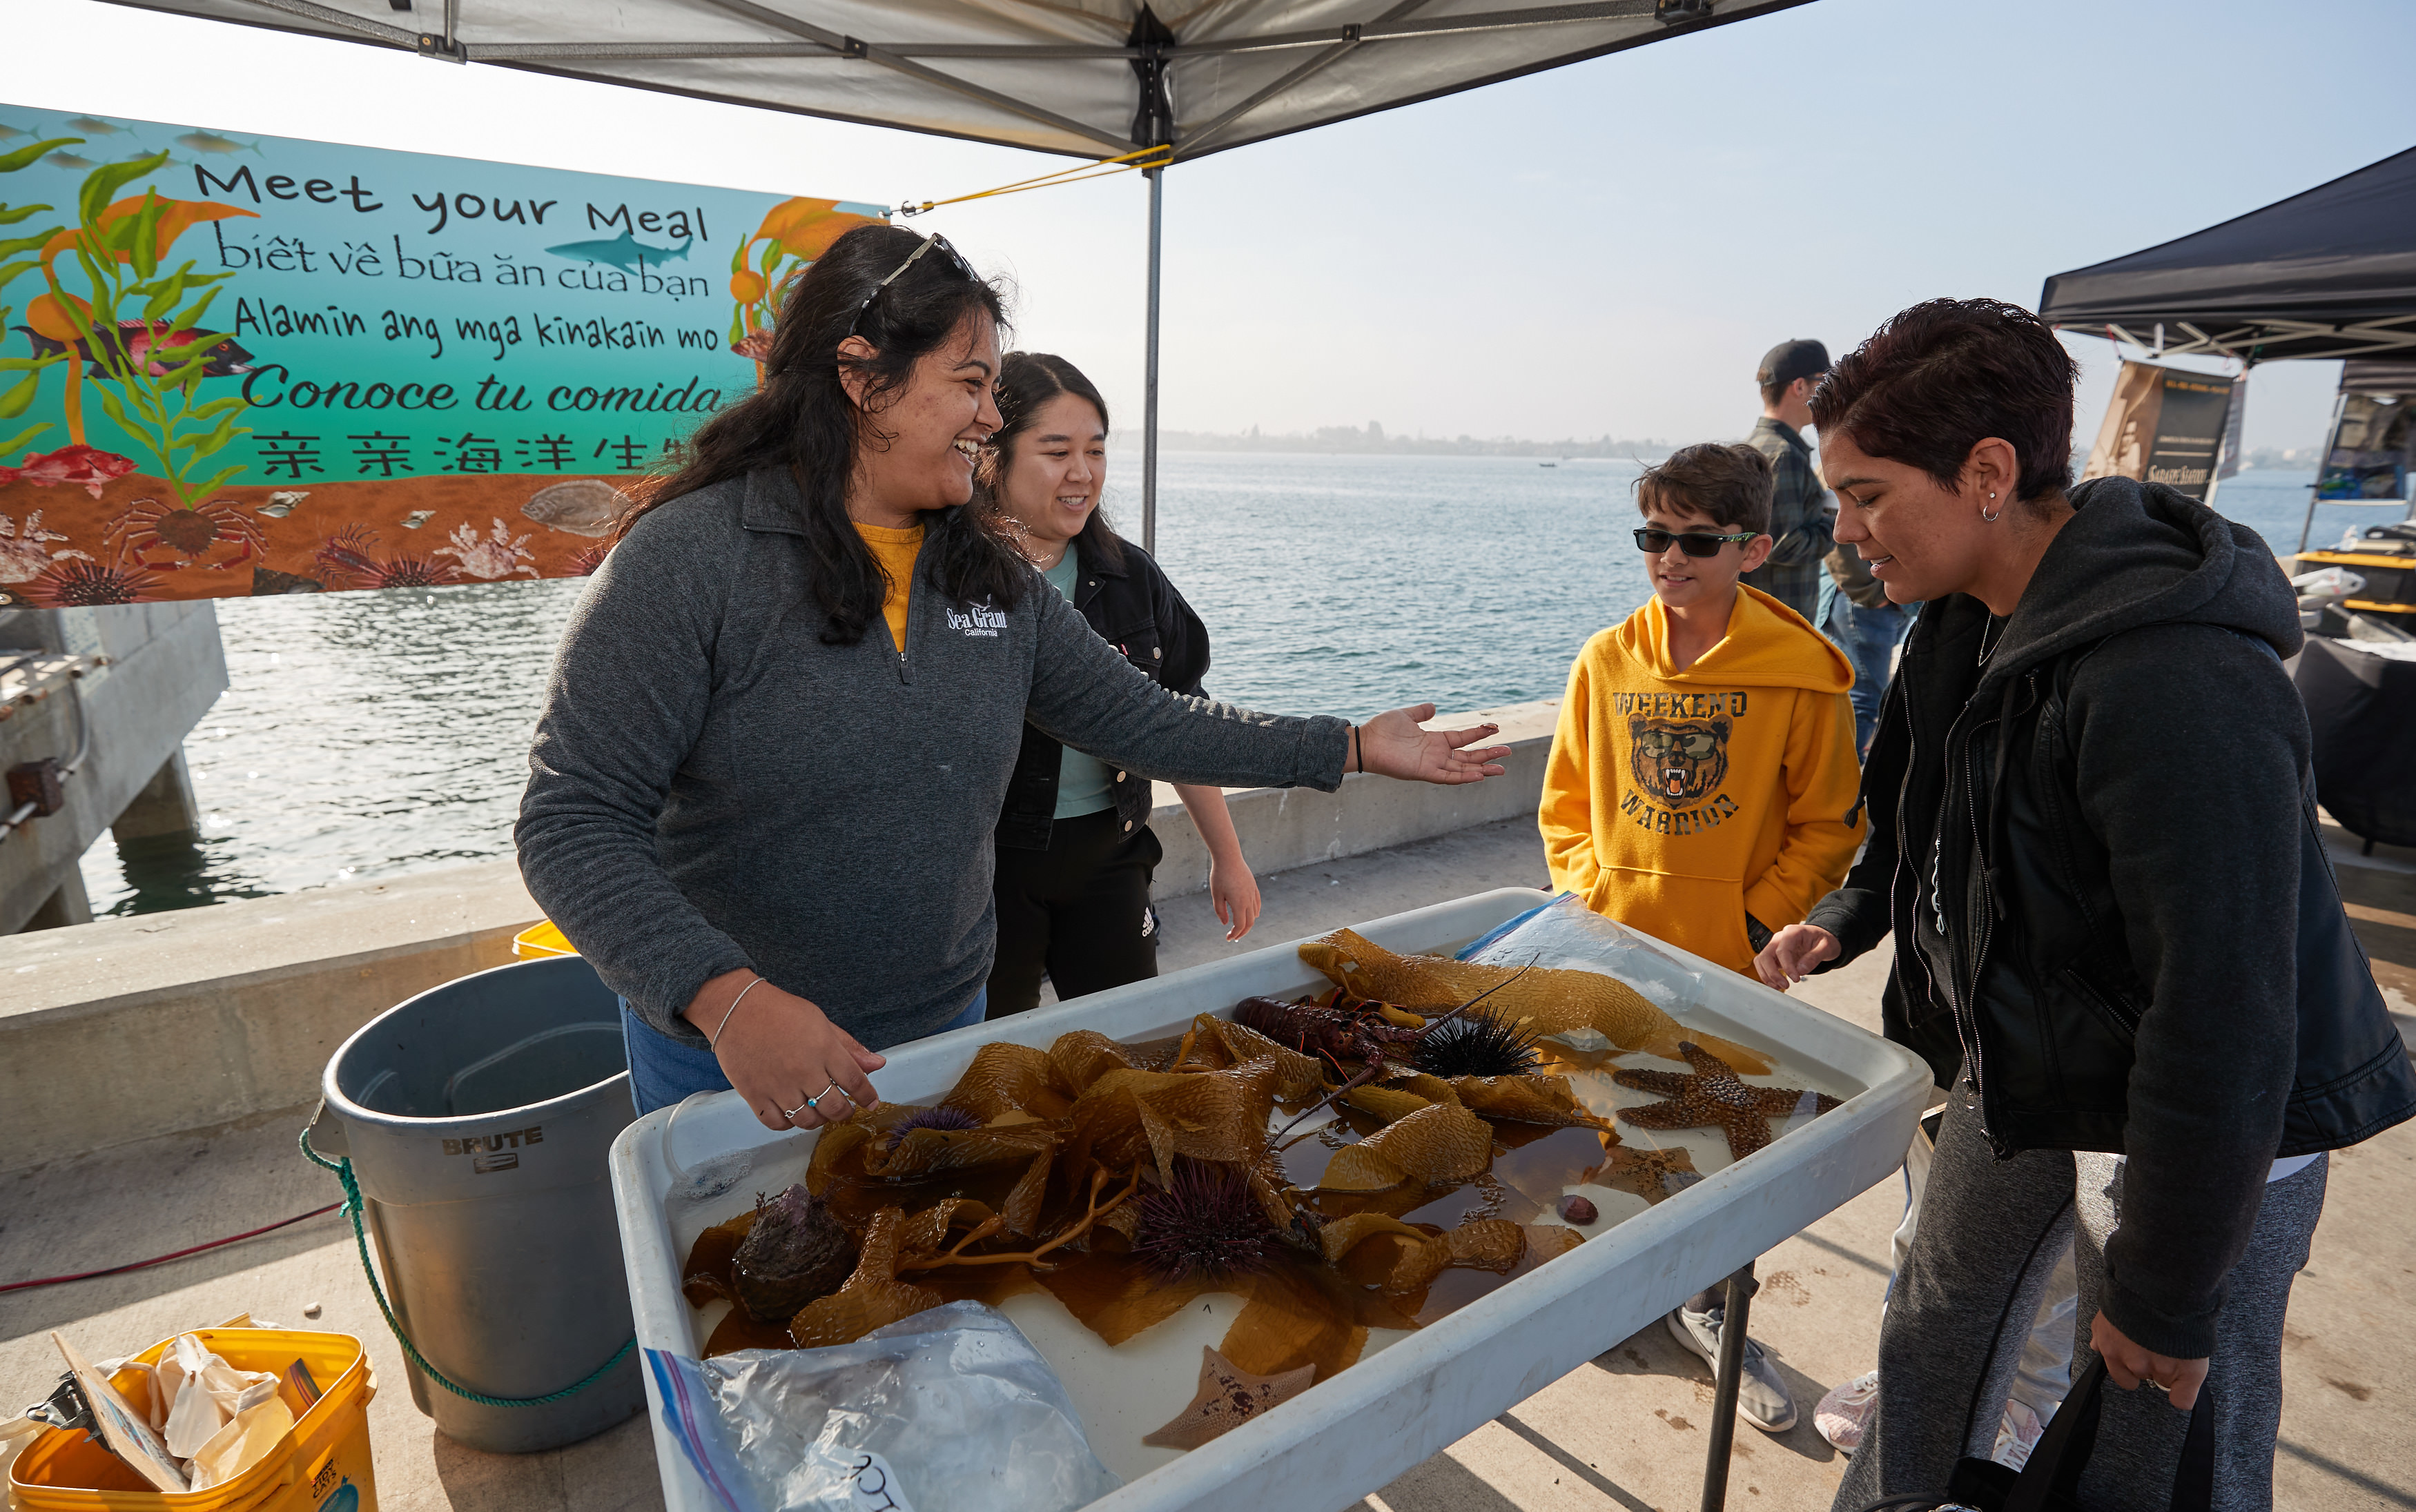 January 2020 California Commercial Fishing Apprenticeship participants visit San Diego's Tuna Harbor Dockside Market. Photo credit: Fred Greaves